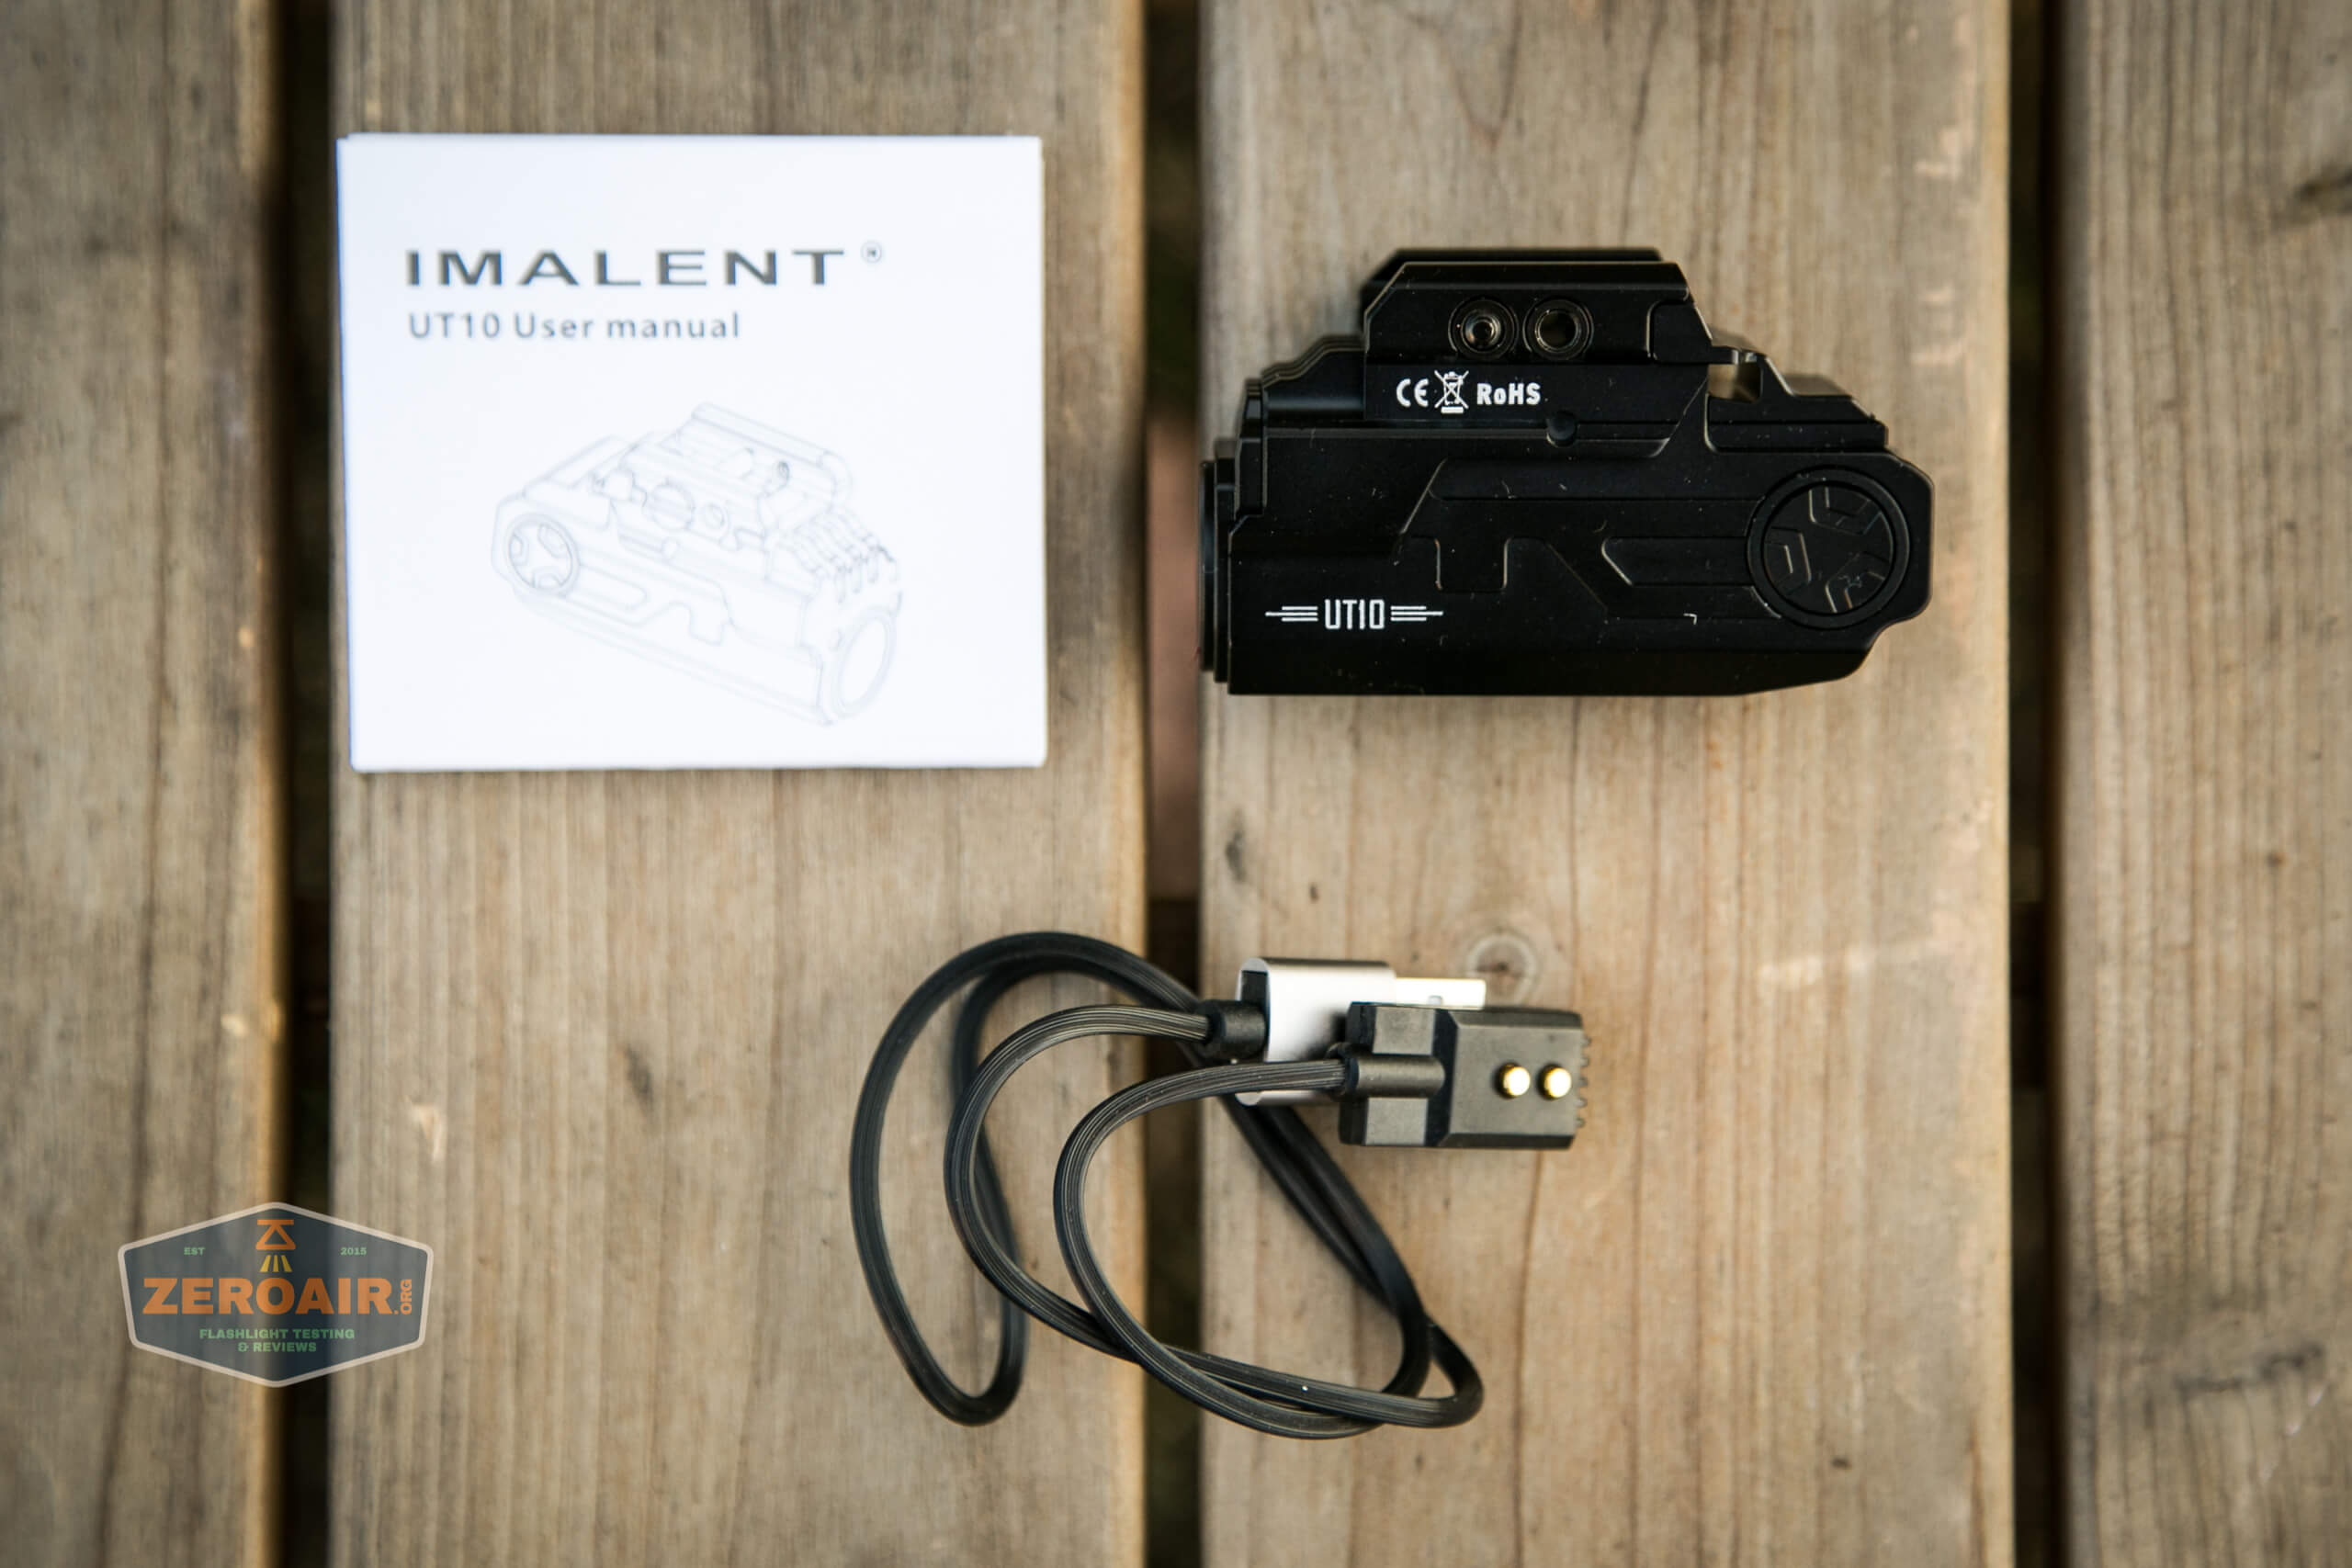 imalent ut10 tactical weapon flashlight what's included